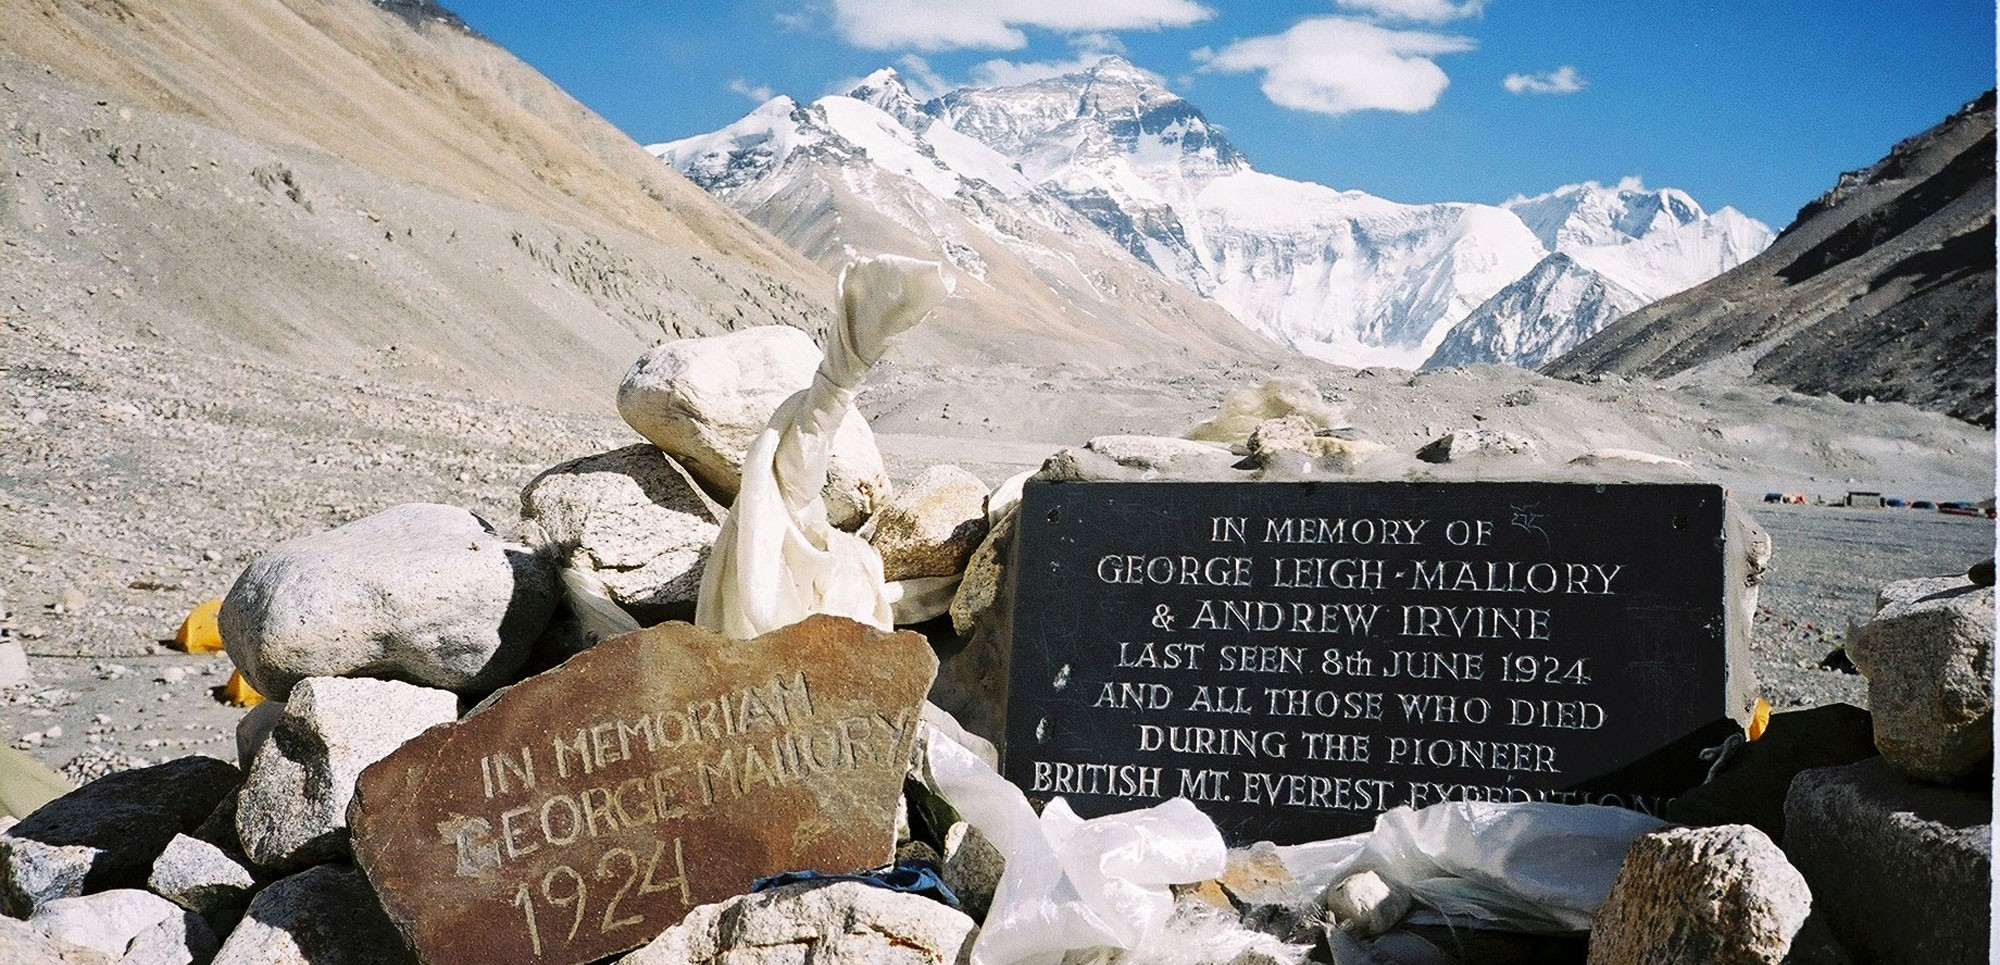 Mallory and Irvine's memorial plaque at Everest Base Camp in Tibet